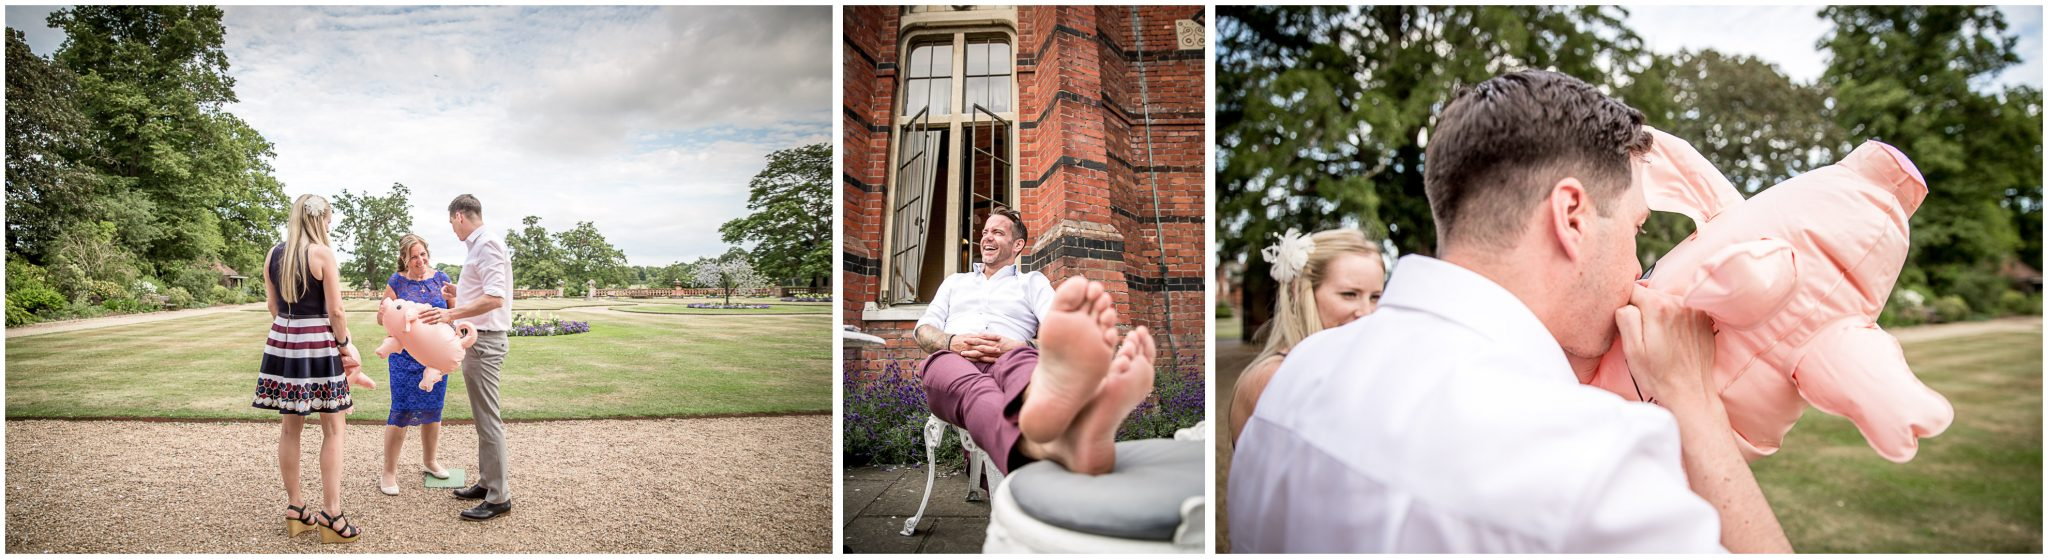 Wedding guests with inflatable pig in gardens of The Elvetham Hotel